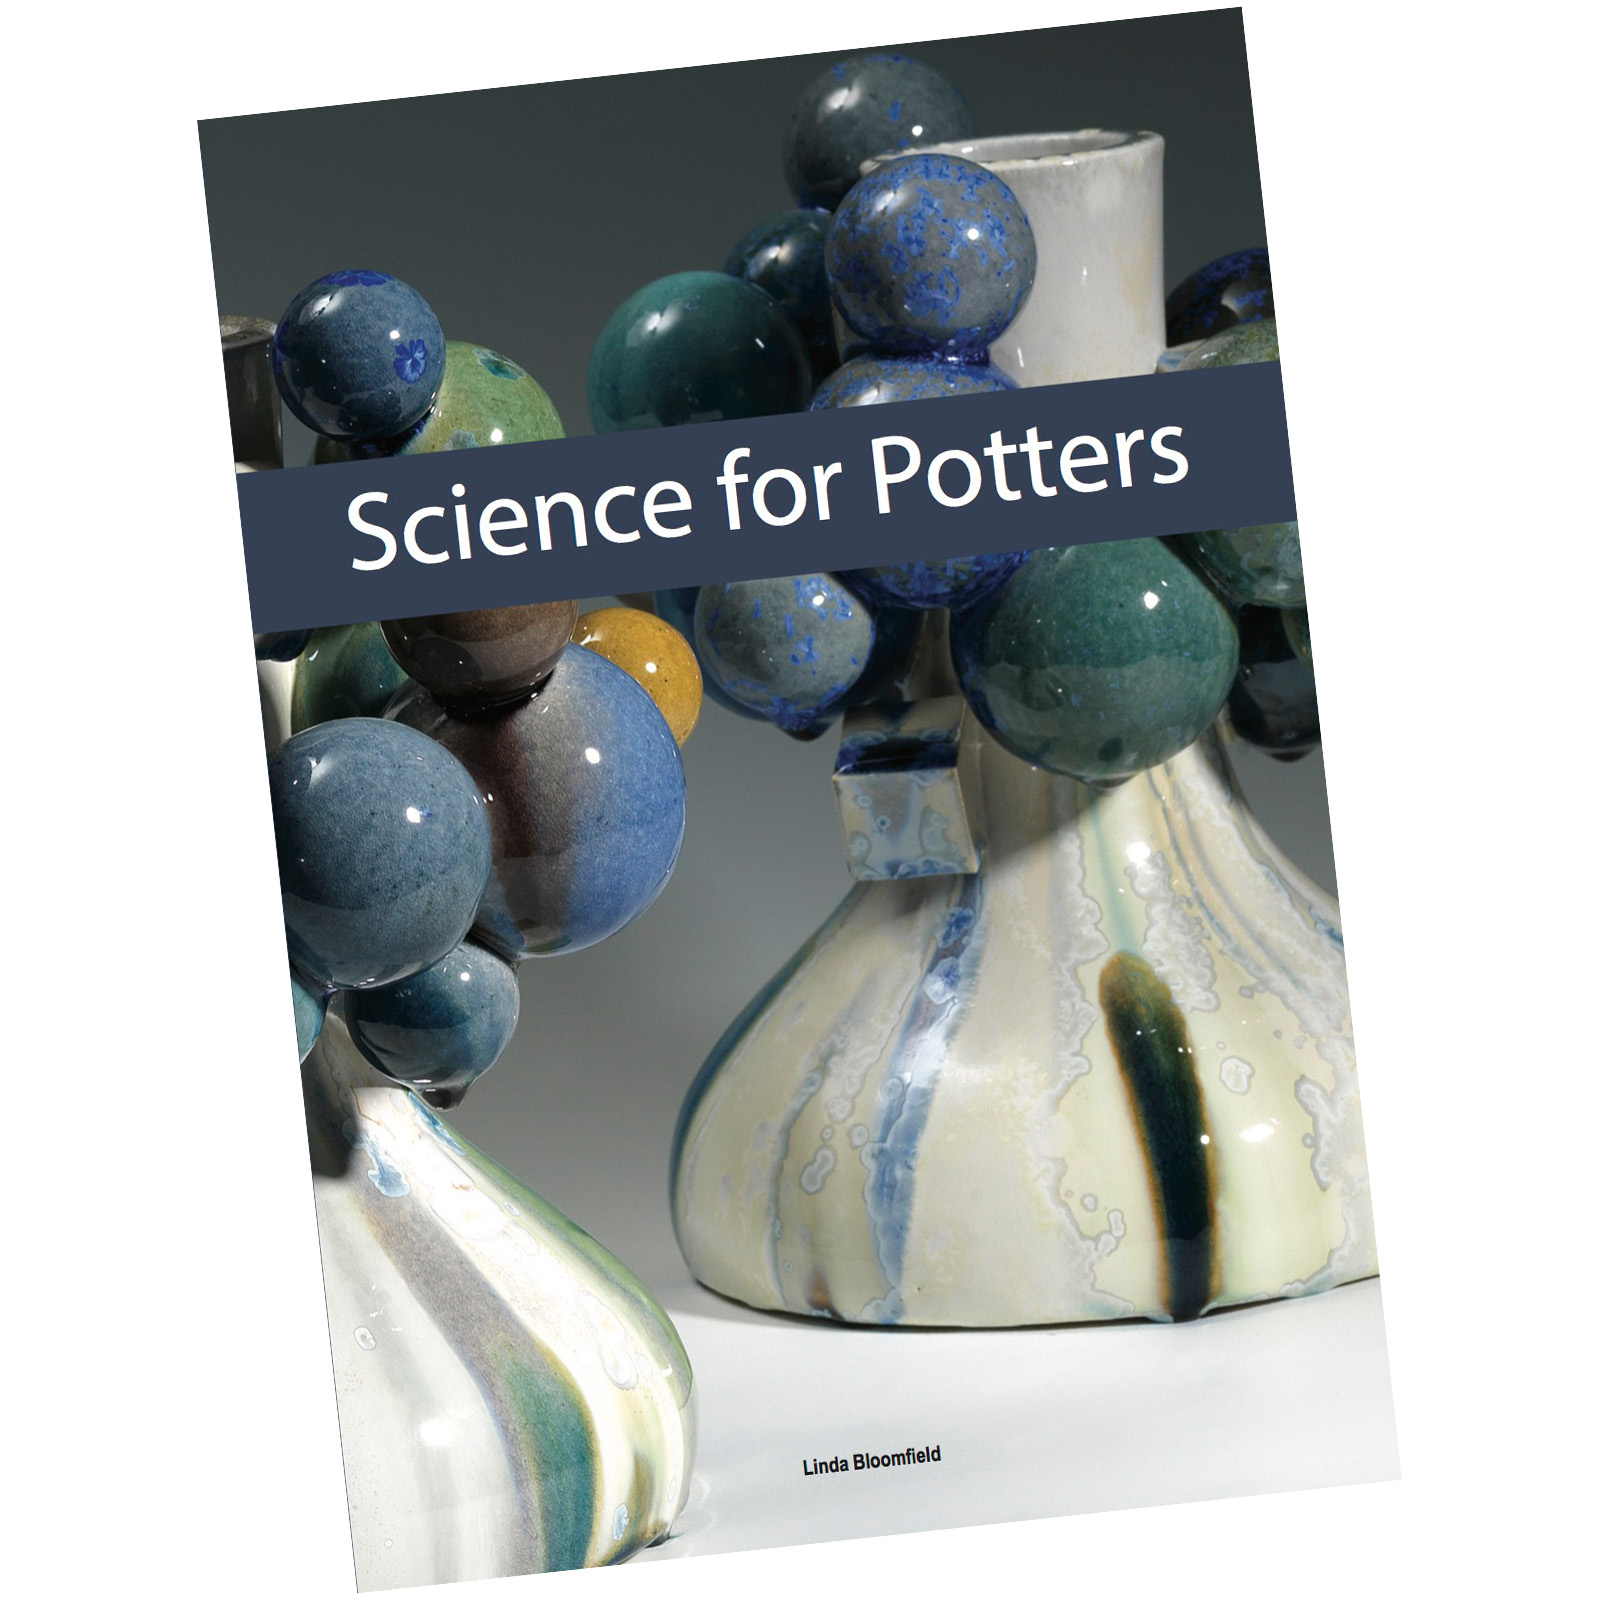 Science for Potters by Linda Bloomfield